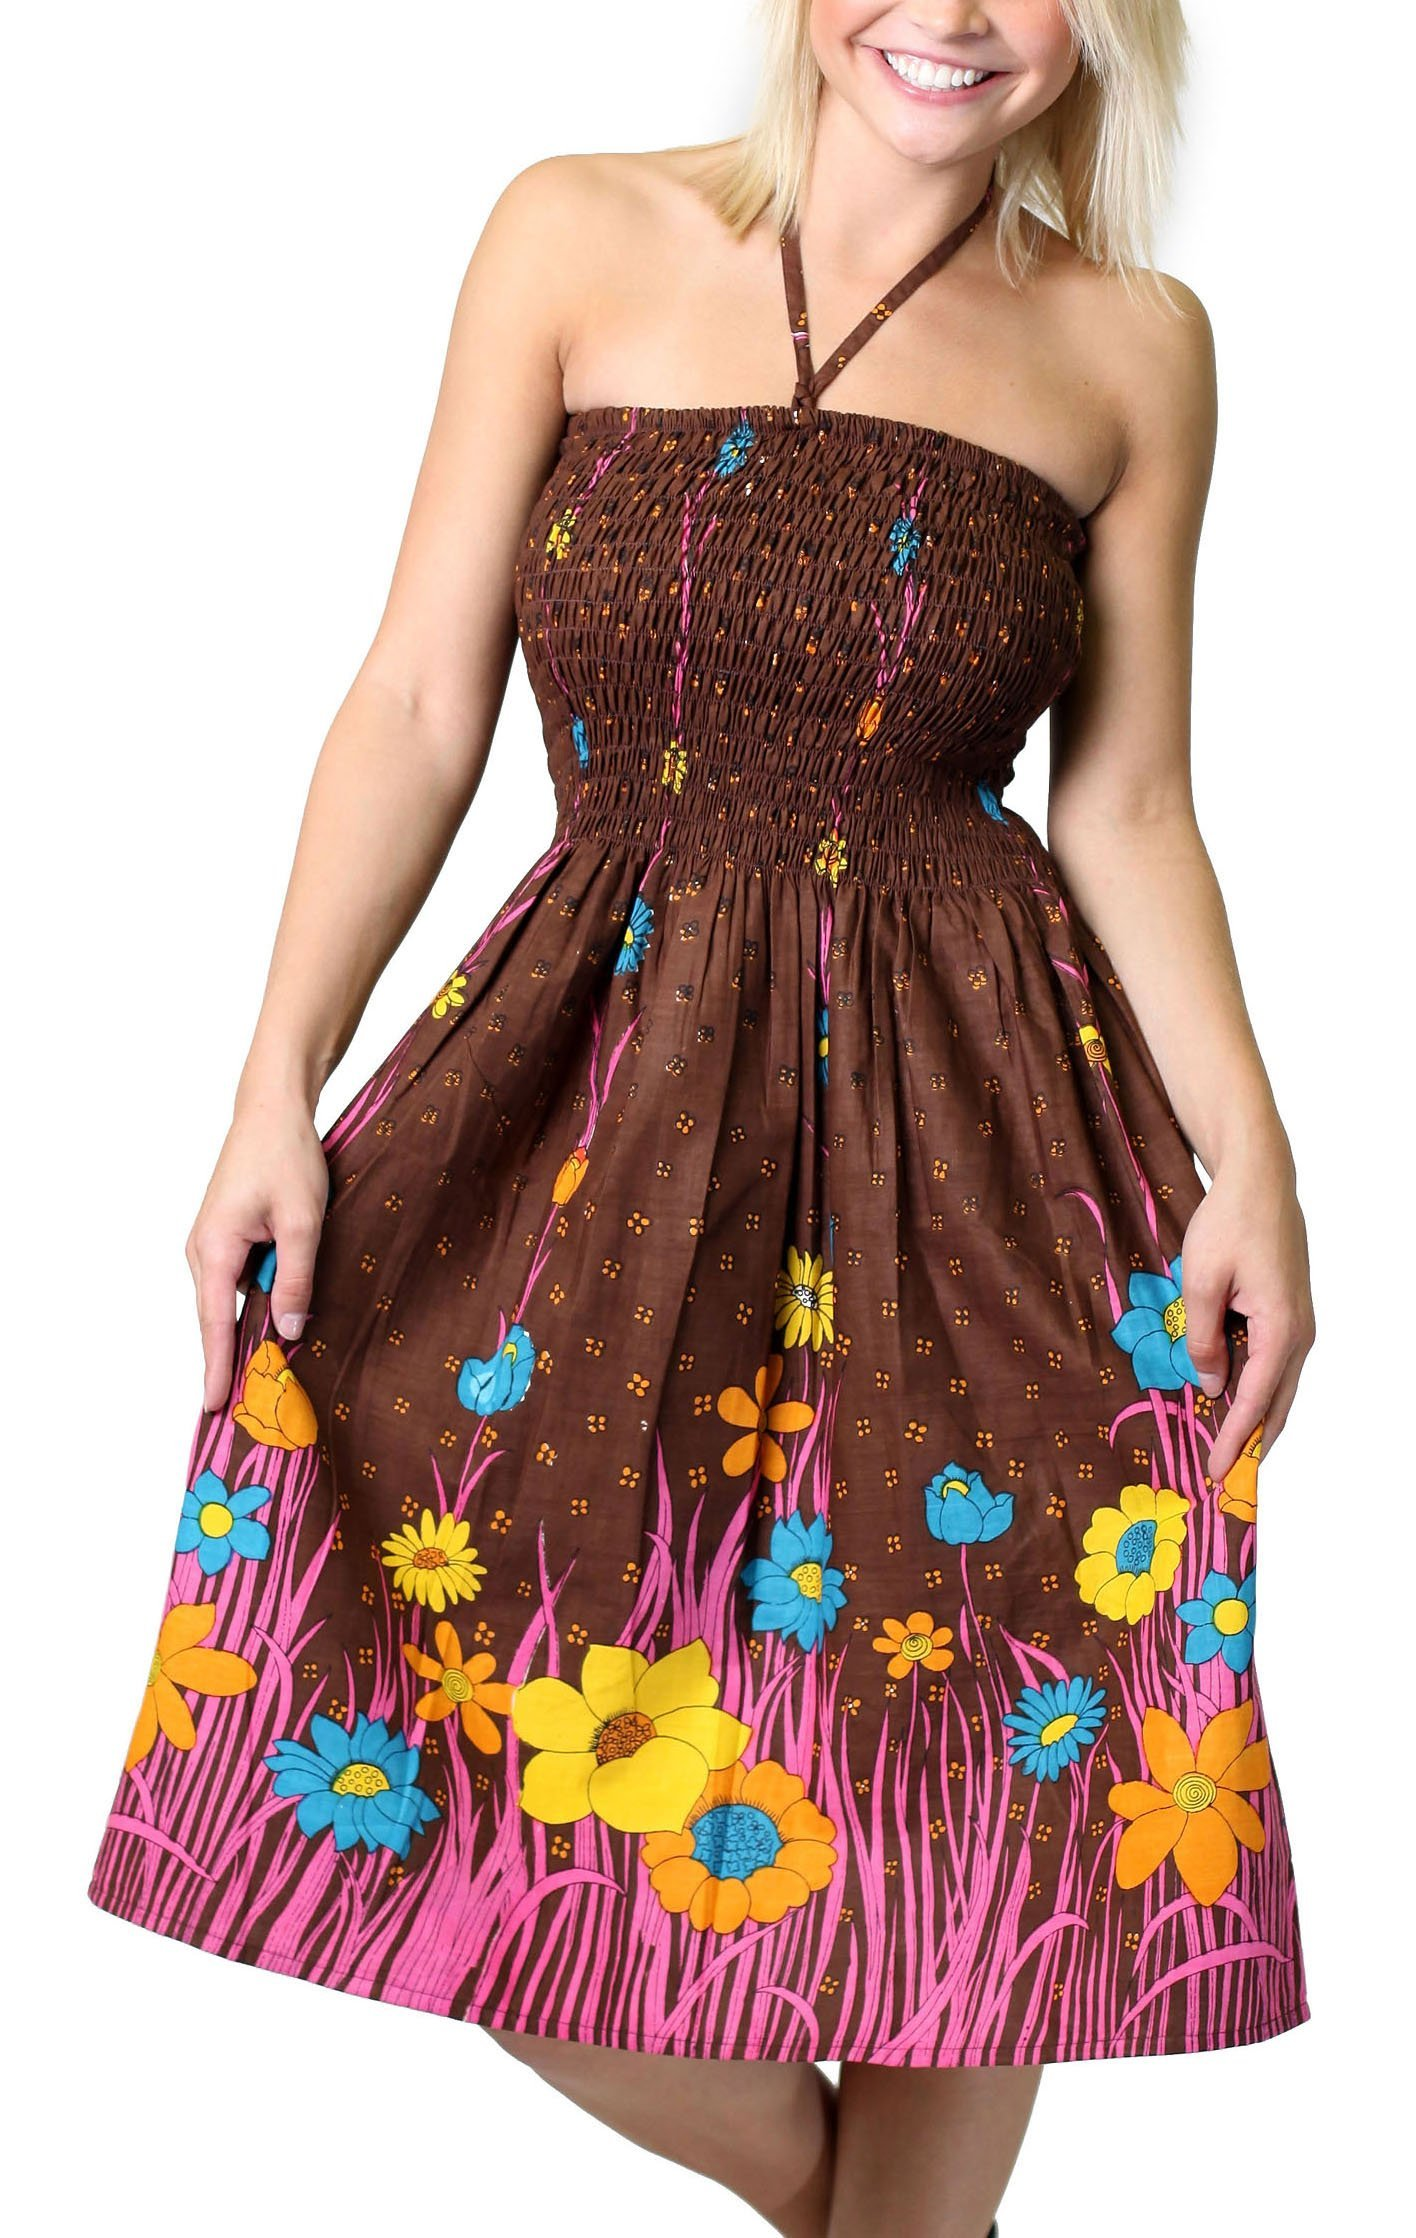 Available at Amazon: Alkii One-Size-fits-Most Tube Dress/Coverup - Flower Garden (Many Colors)